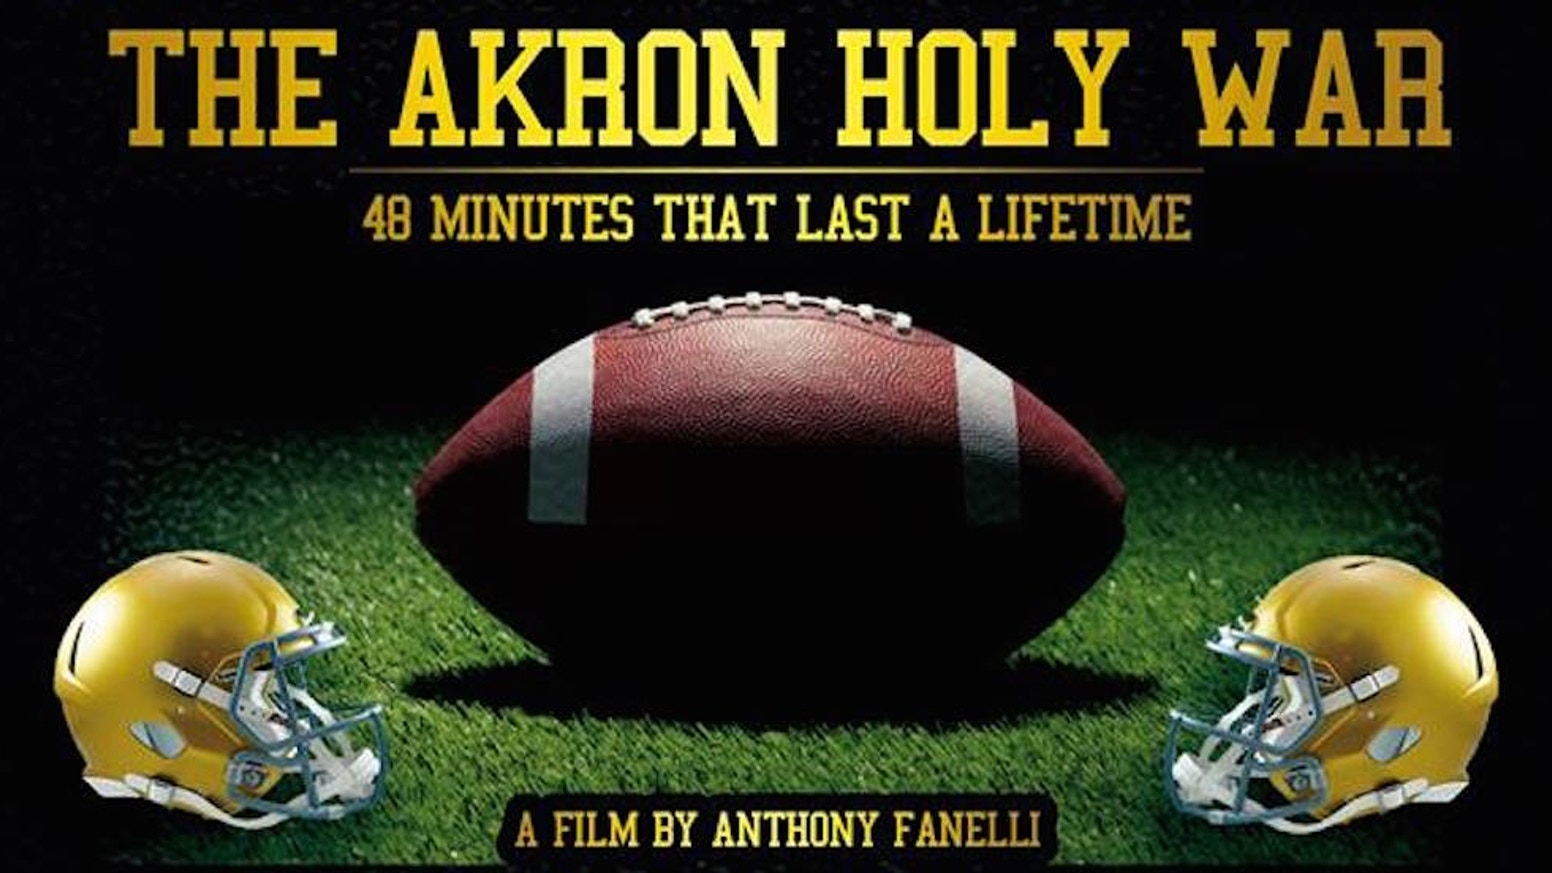 A full-length, narrative documentary film about the heated rivalry between two Akron, Ohio parochial high school football powerhouses.